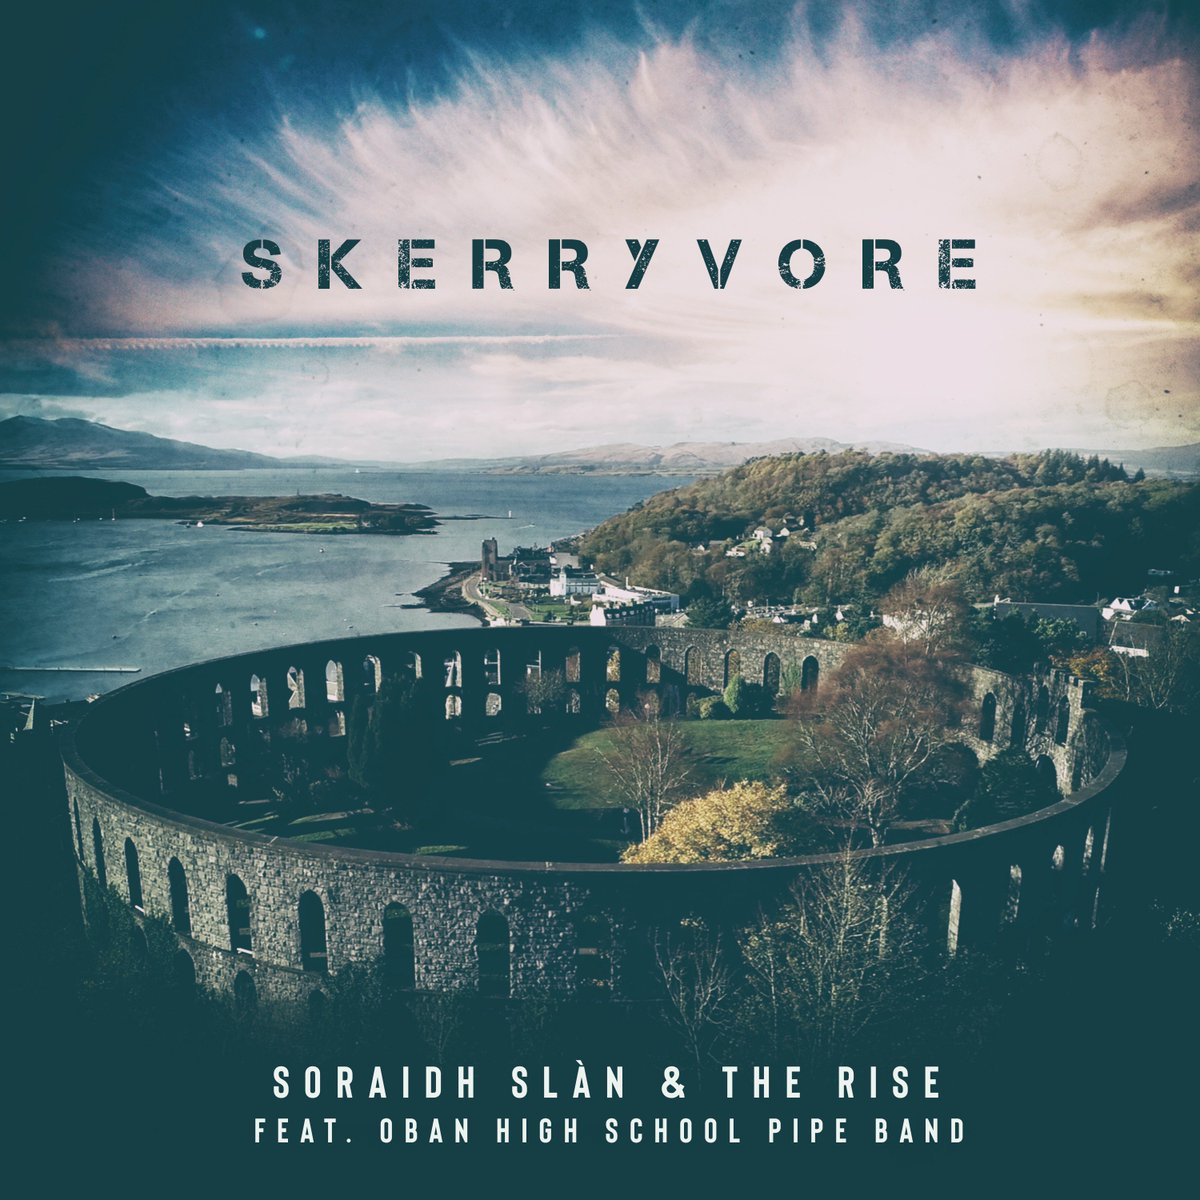 SKERRYVORE on Twitter: